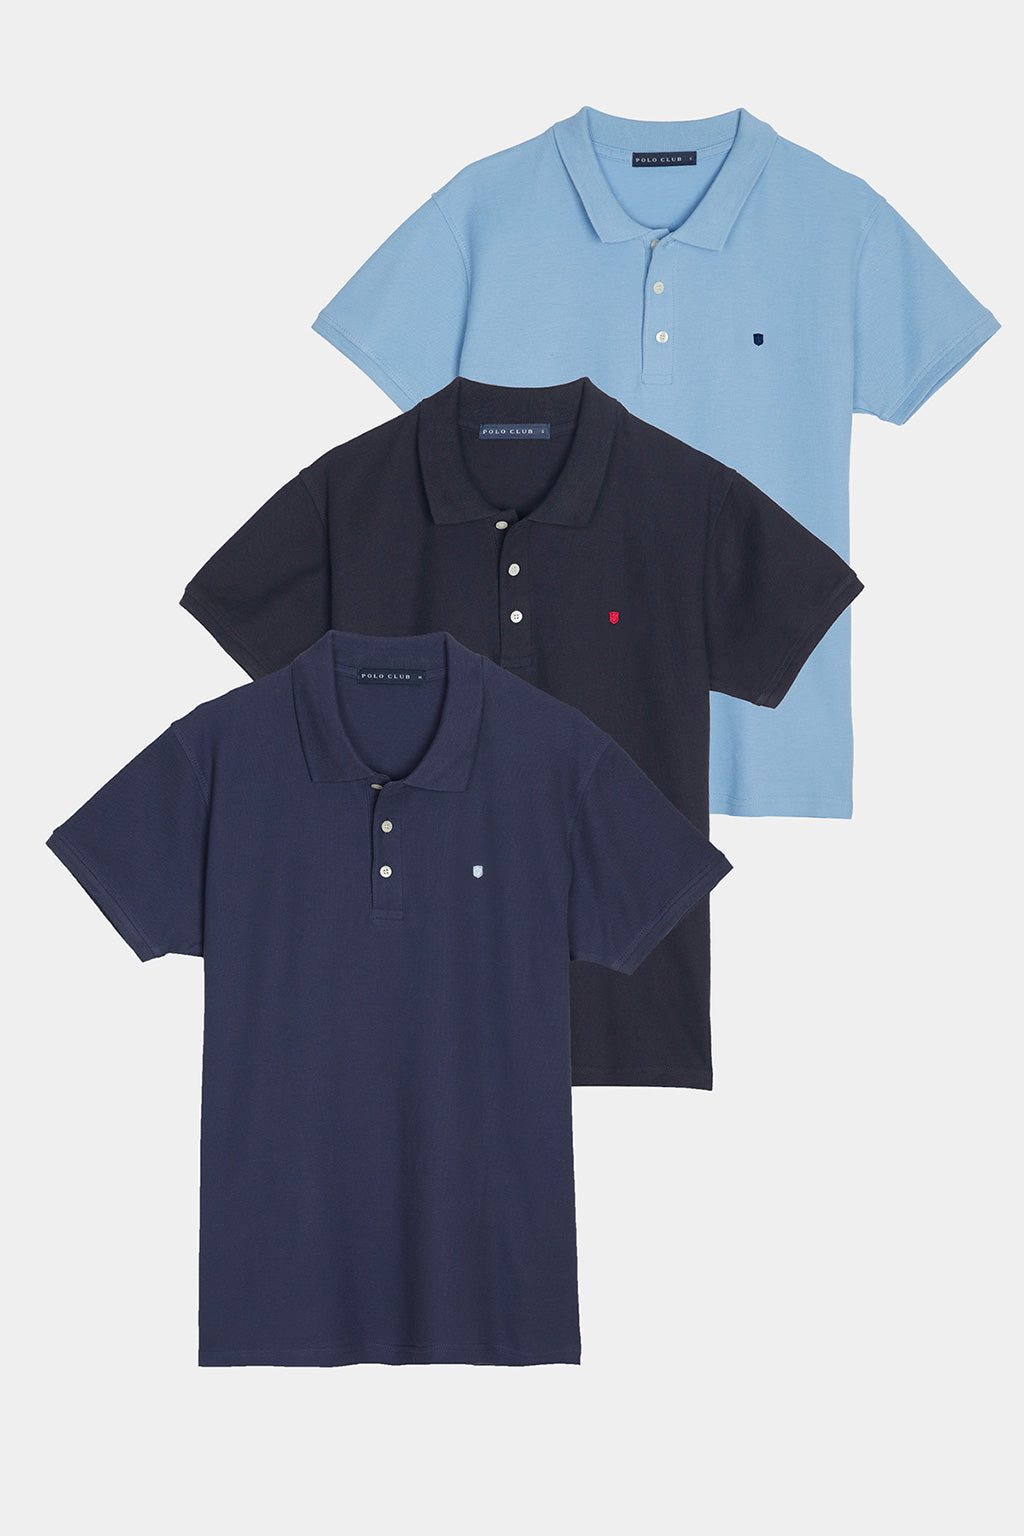 Polo shirt three pack in blue shades